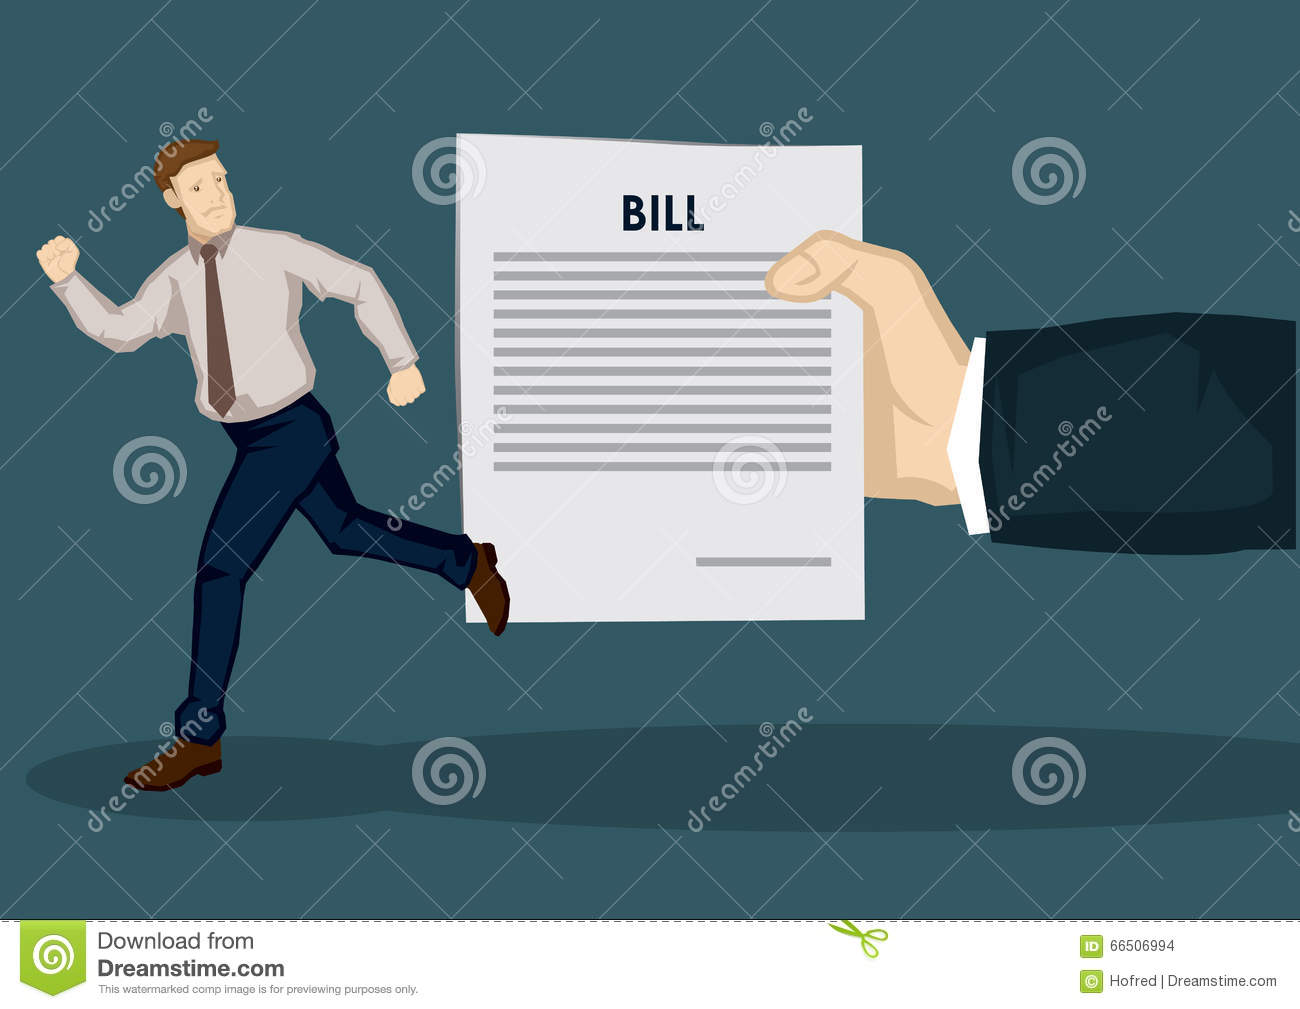 thought paper based on buffalo bill essay The tools you need to write a quality essay or term paper the creepiness of both buffalo bill (ted silence of the lambs, or films based on those john.